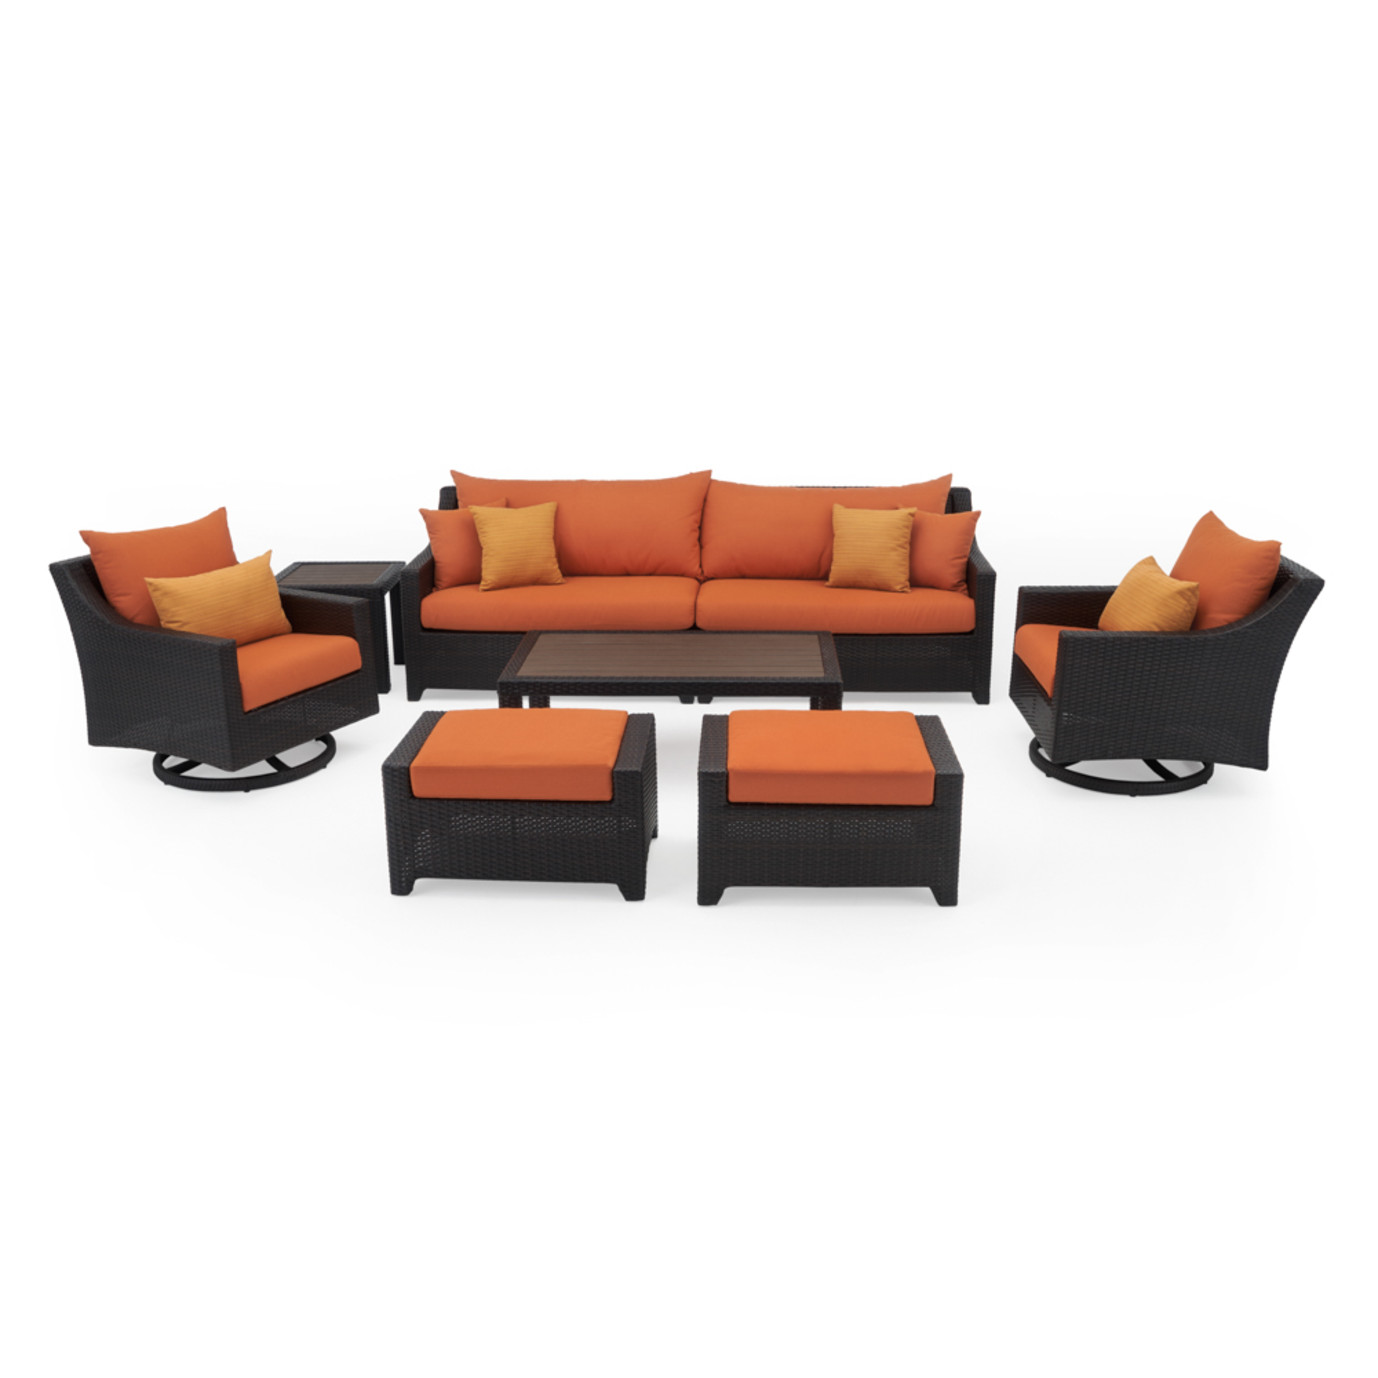 Deco™ Deluxe 8 Piece Sofa & Club Chair Set - Tikka Orange